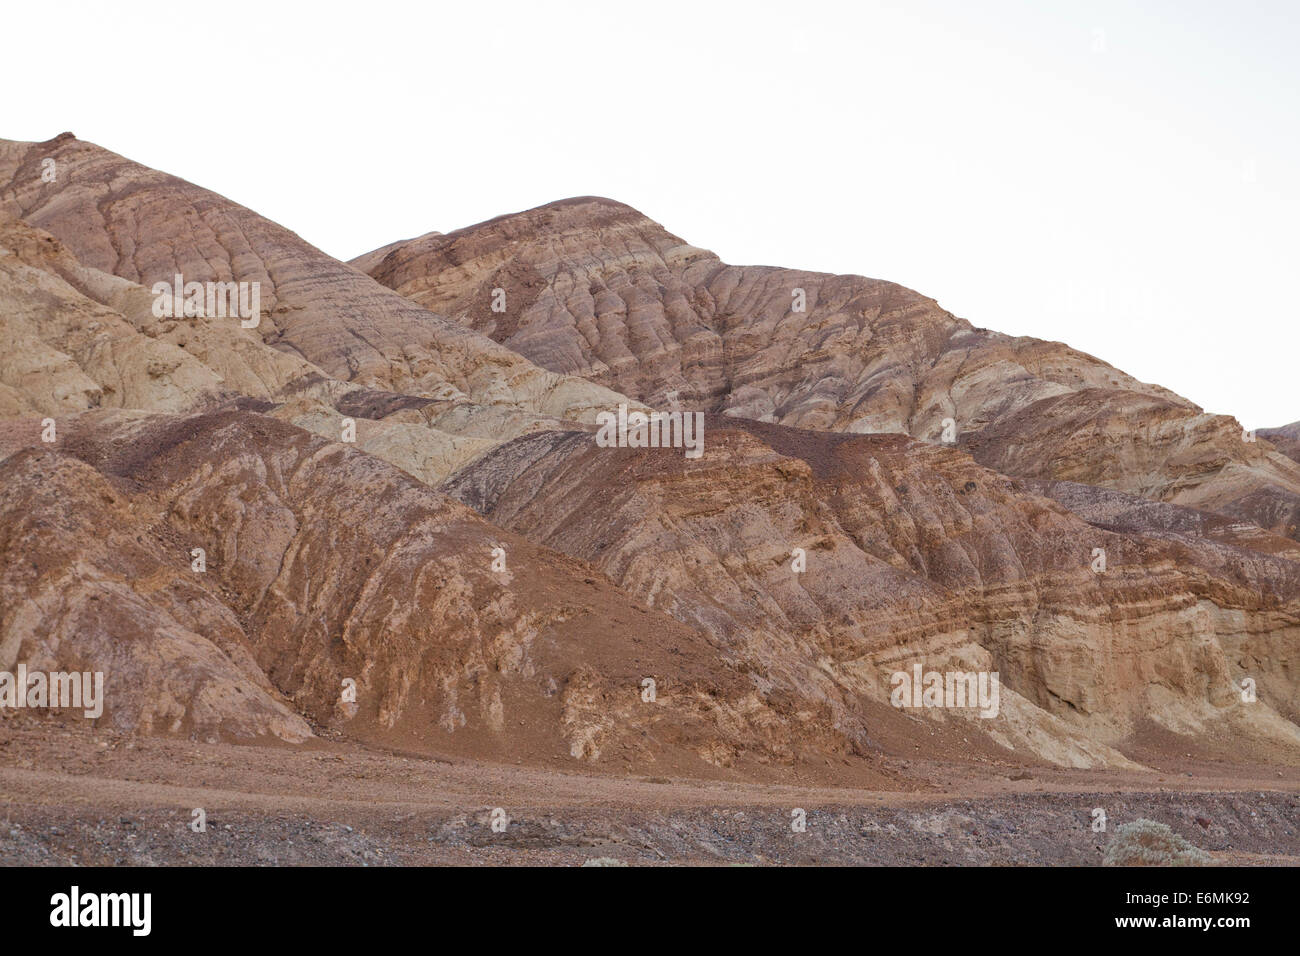 Mineral rich desert mountainside - Death Valley, California USA - Stock Image